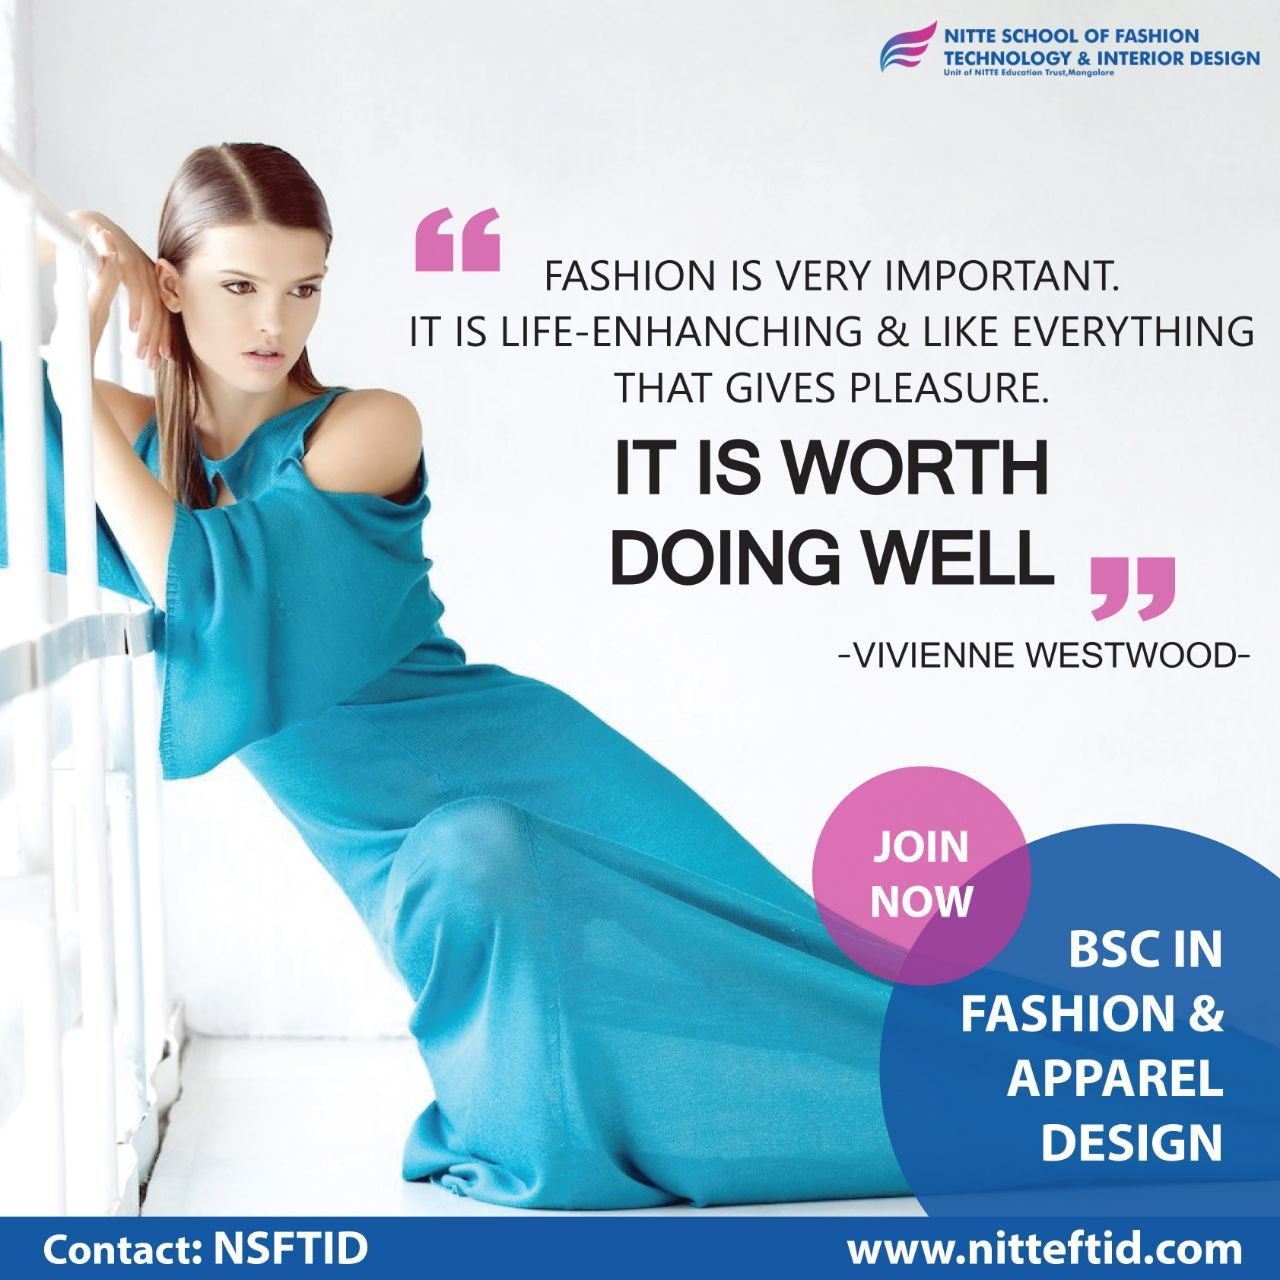 Pin By Fashion On Best Fashion Design And Interior Design Colleges In Bangalore Apparel Design Interior Design Colleges Fashion Design